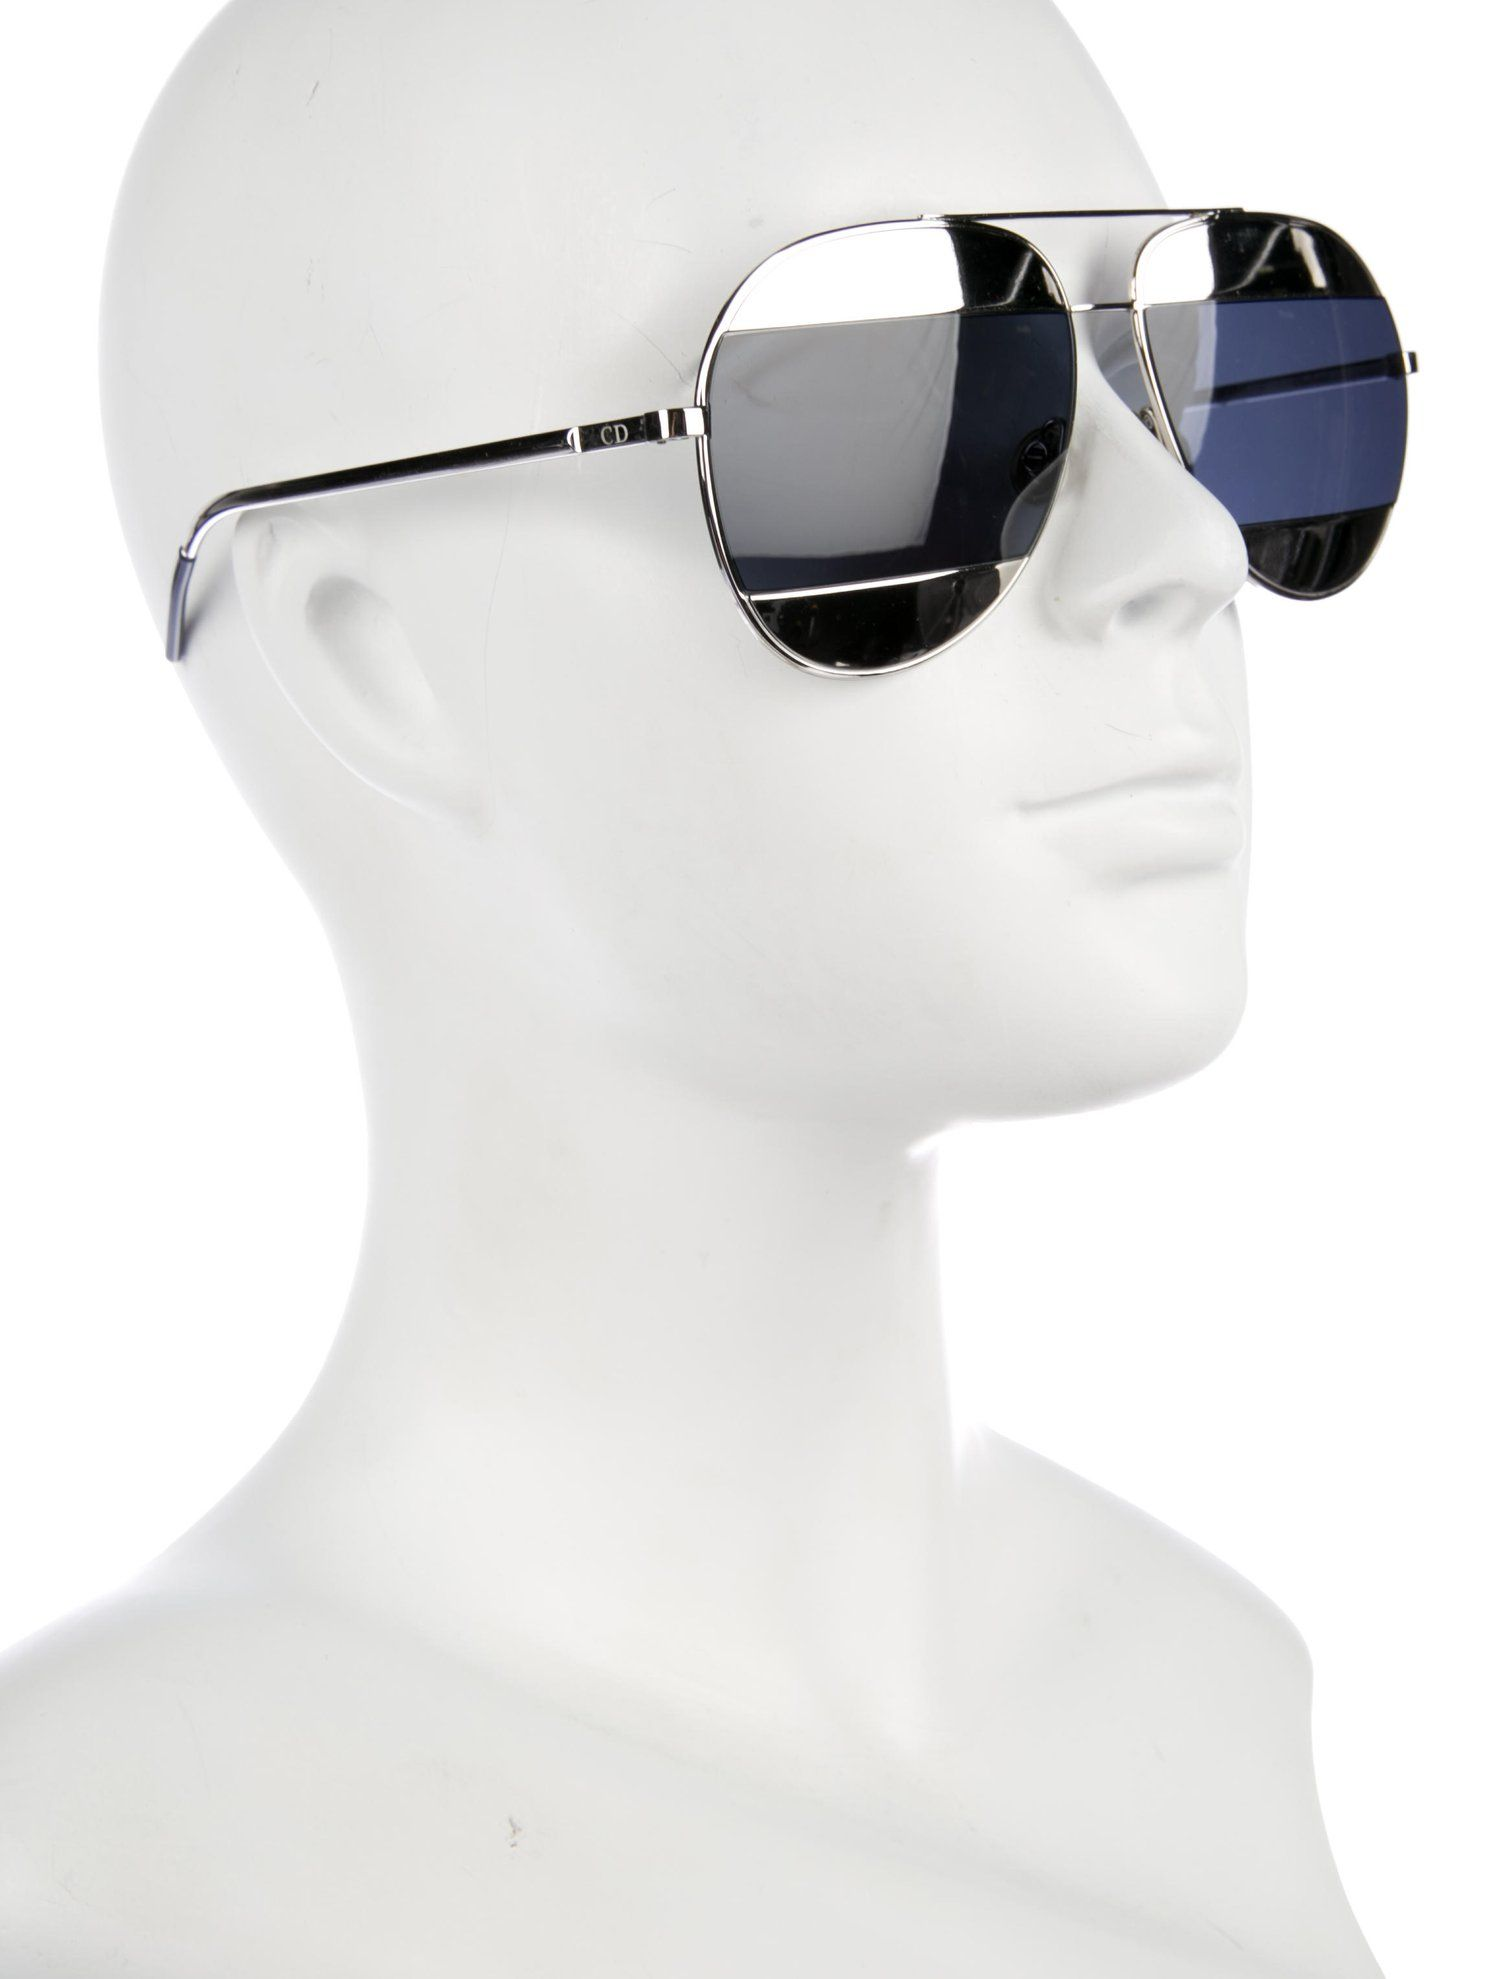 76878be6d5a7 Christian Dior Split 1 Mirrored Sunglasses - Accessories - CHR83597 | The  RealReal